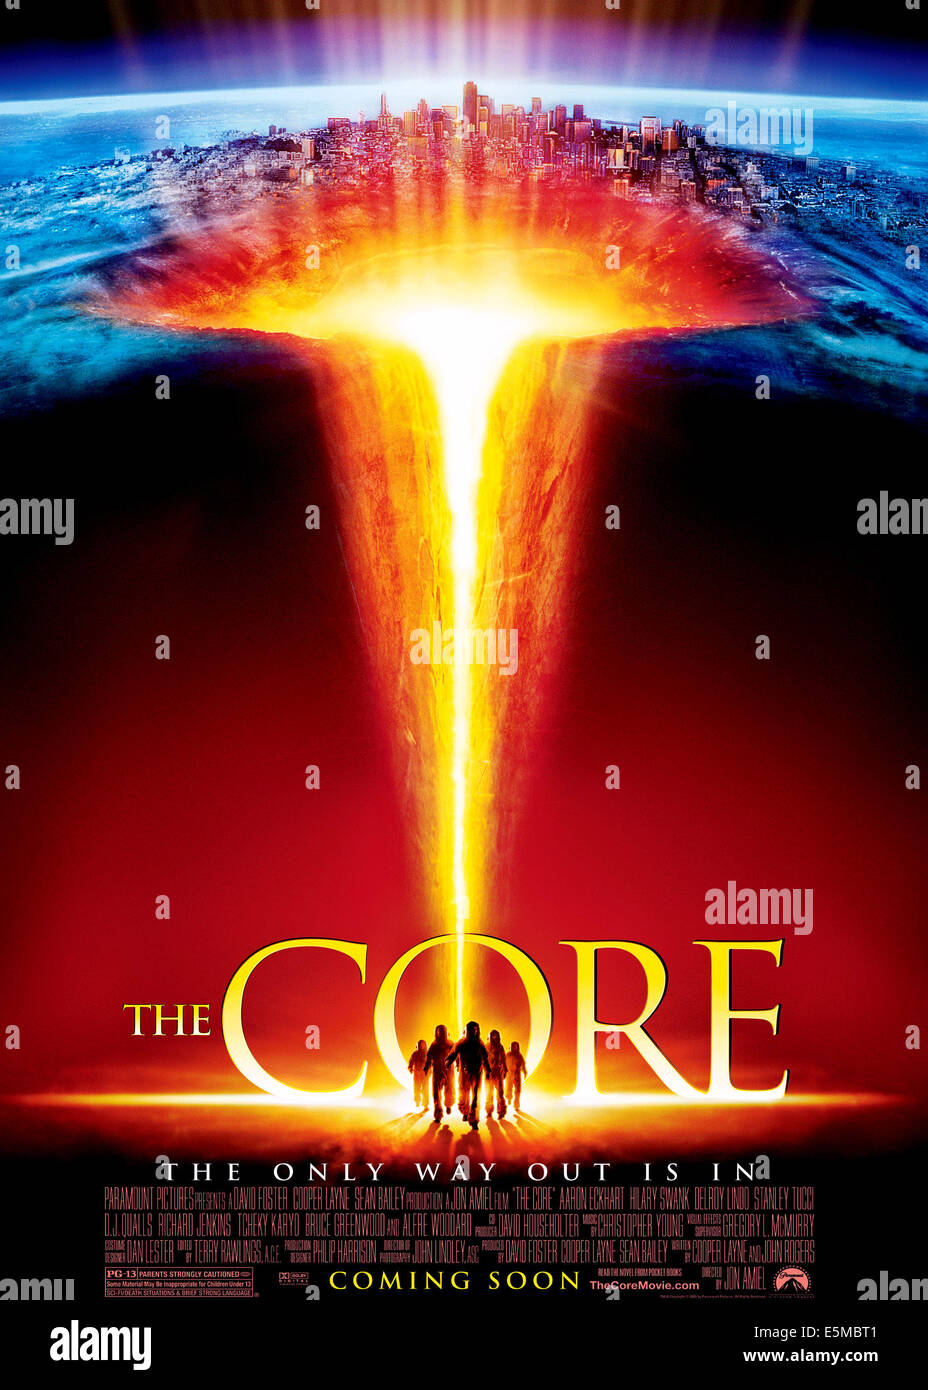 THE CORE, 2003, (c) Paramount/courtesy Everett Collection - Stock Image